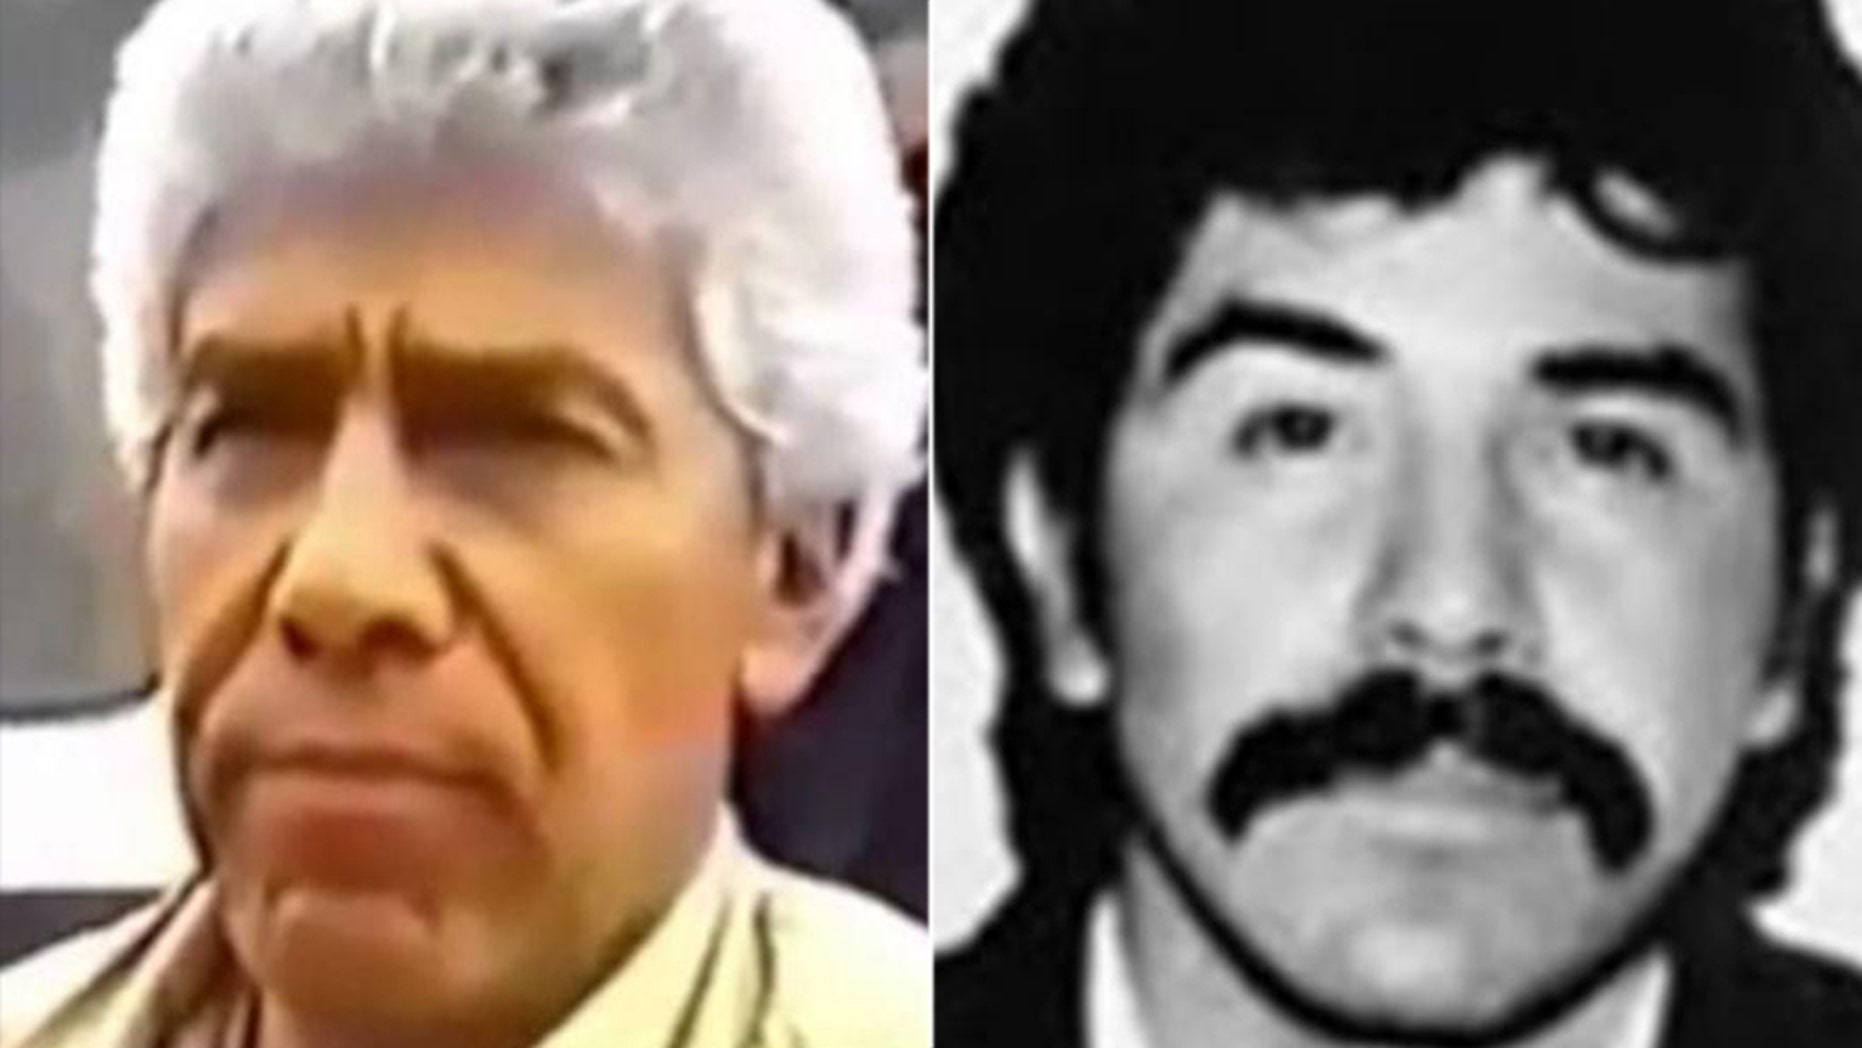 """Mexican drug kingpin Rafael Caro-Quintero, who is affiliated with Joaquin """"El Chapo"""" Guzman, was added Thursday to the FBI's list of most-wanted fugitives. (FBI)"""